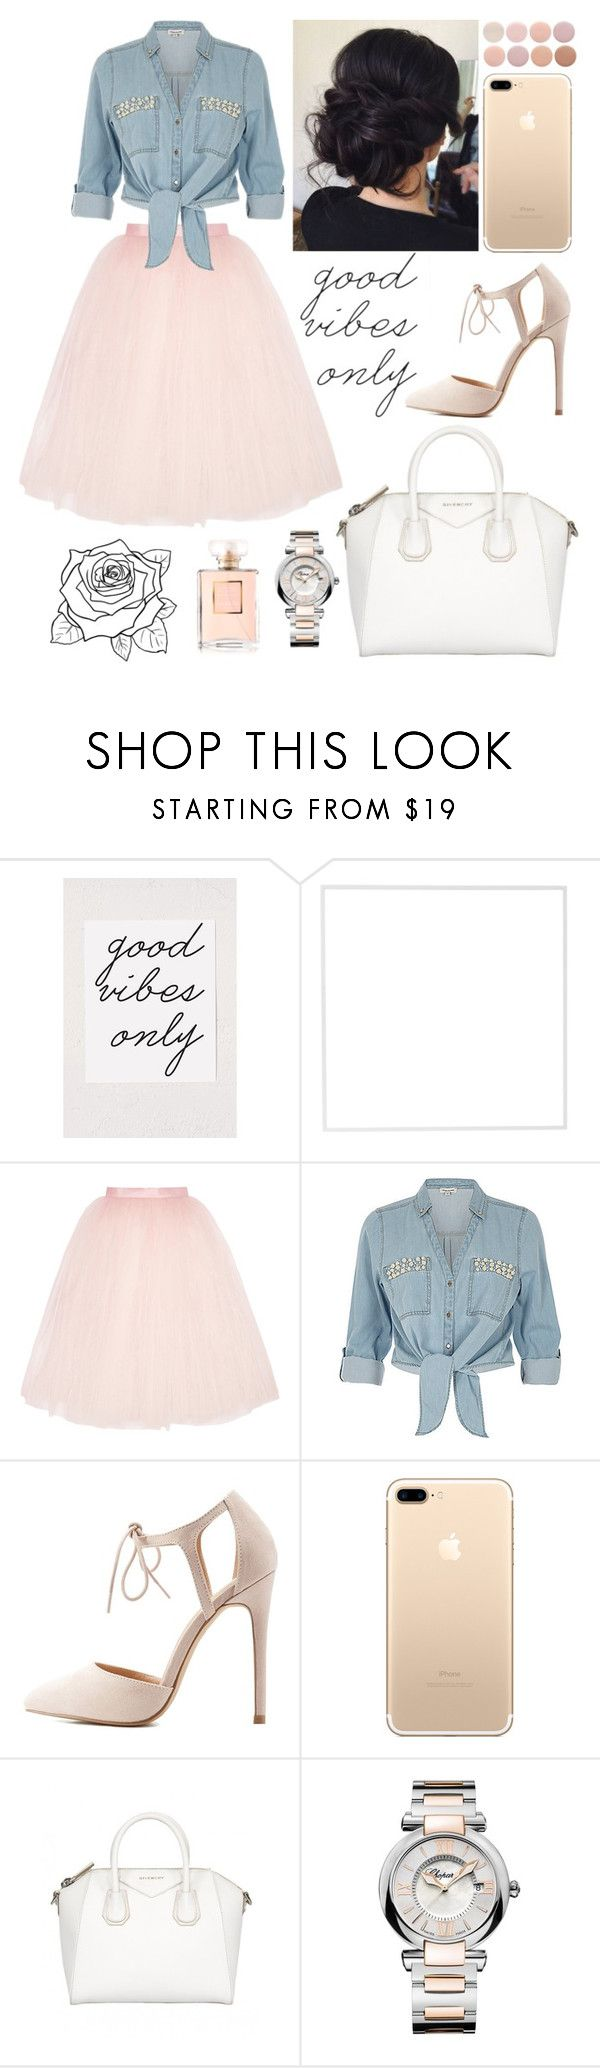 """Untitled #167"" by sarahgriffis ❤ liked on Polyvore featuring Urban Outfitters, Menu, Ballet Beautiful, ZAK, Charlotte Russe, Chopard and Deborah Lippmann"